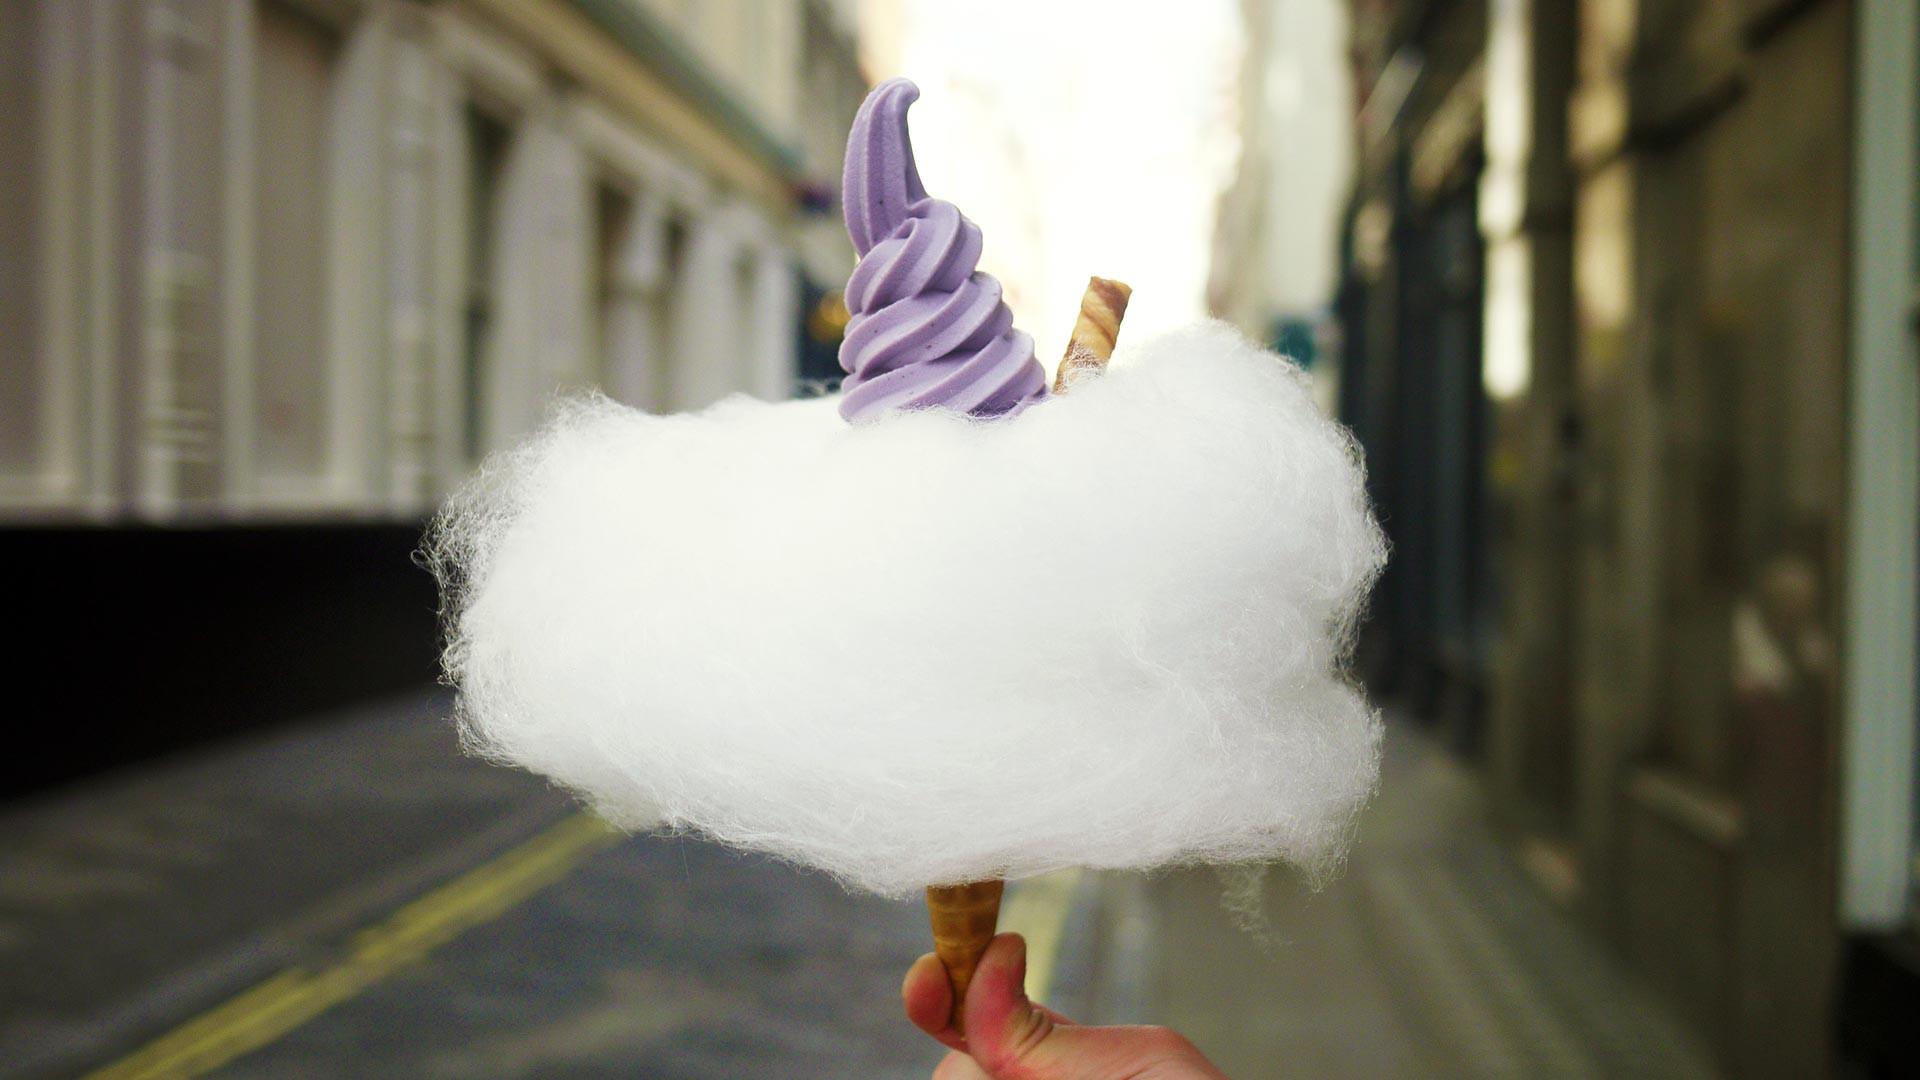 Blueberry soft serve and candy floss cone from Milk Train